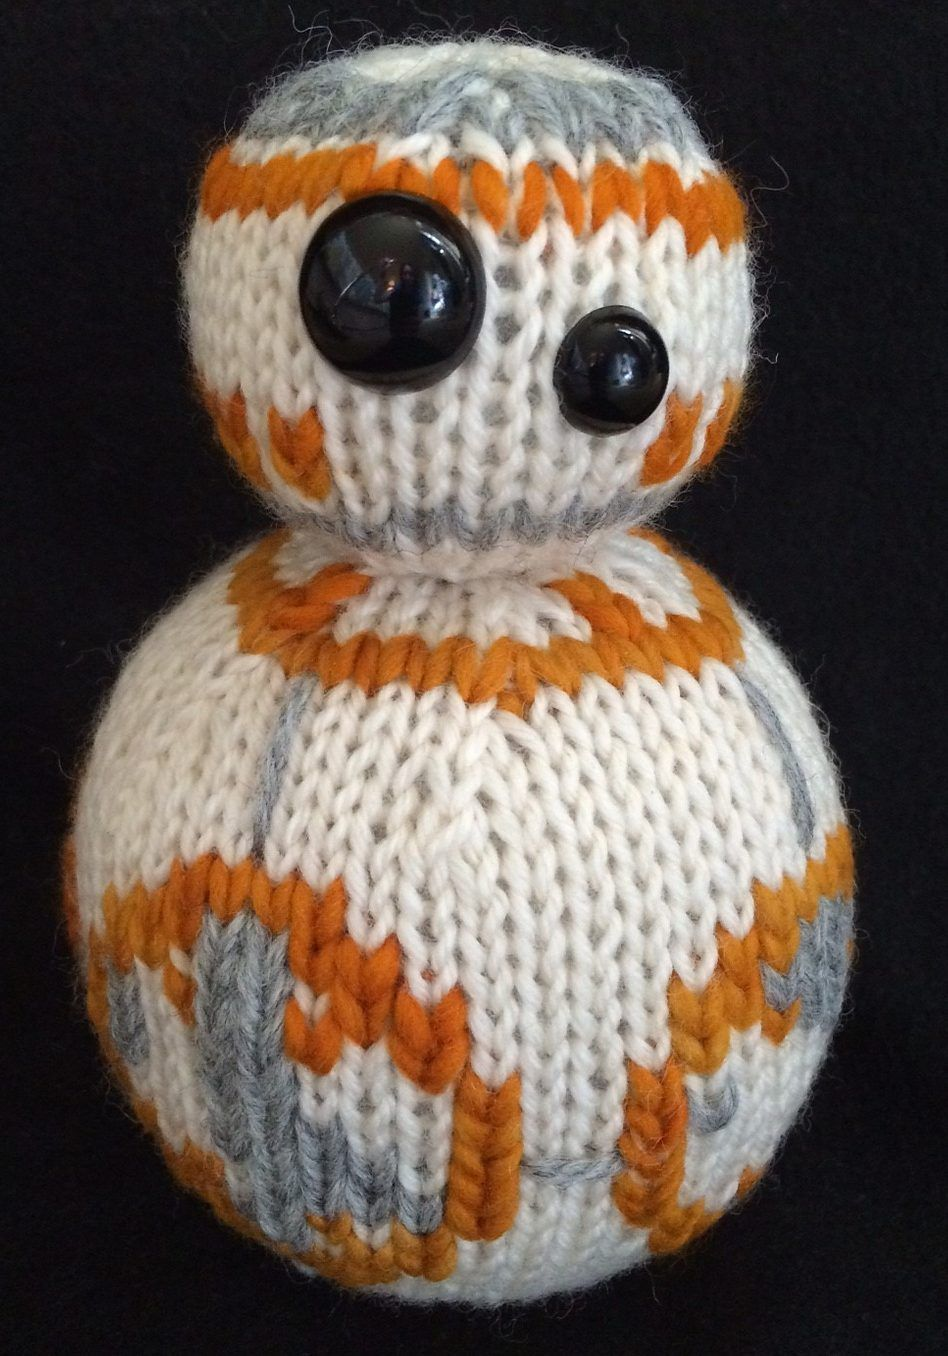 Star wars knitting patterns knitting patterns toy and patterns crochet free knitting pattern for bb 8 toy inspired by star wars bankloansurffo Images